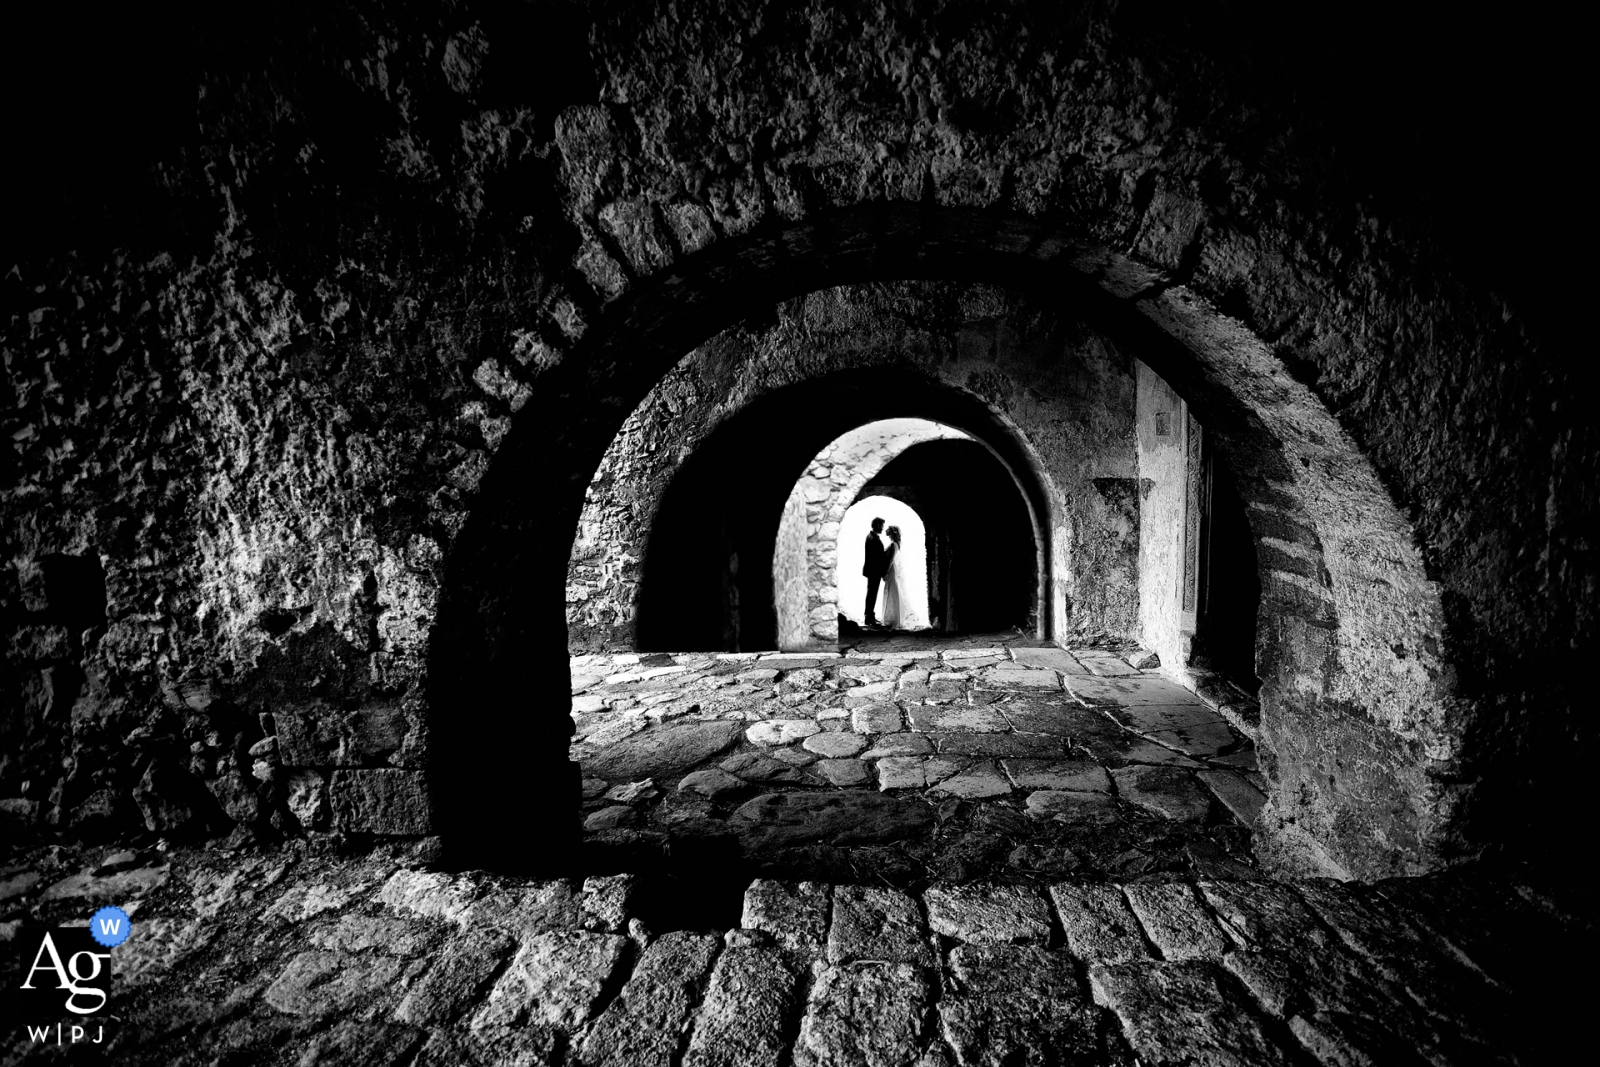 Wedding Photos in Monemvasia, Greece | Black and white portrait with the couple under stone arches